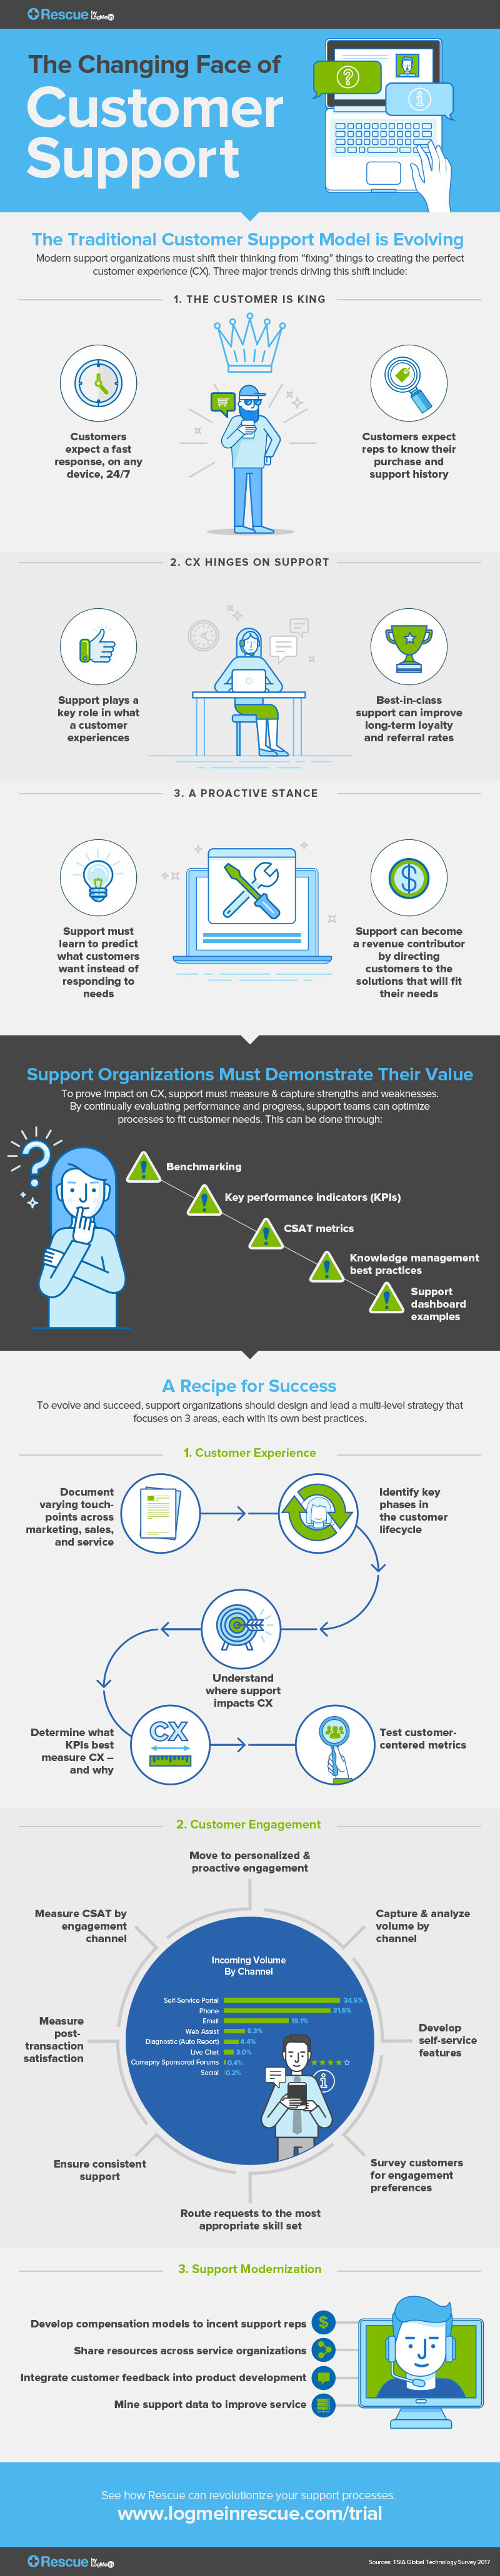 infographic-idg-changing-the-face-of-customer-support